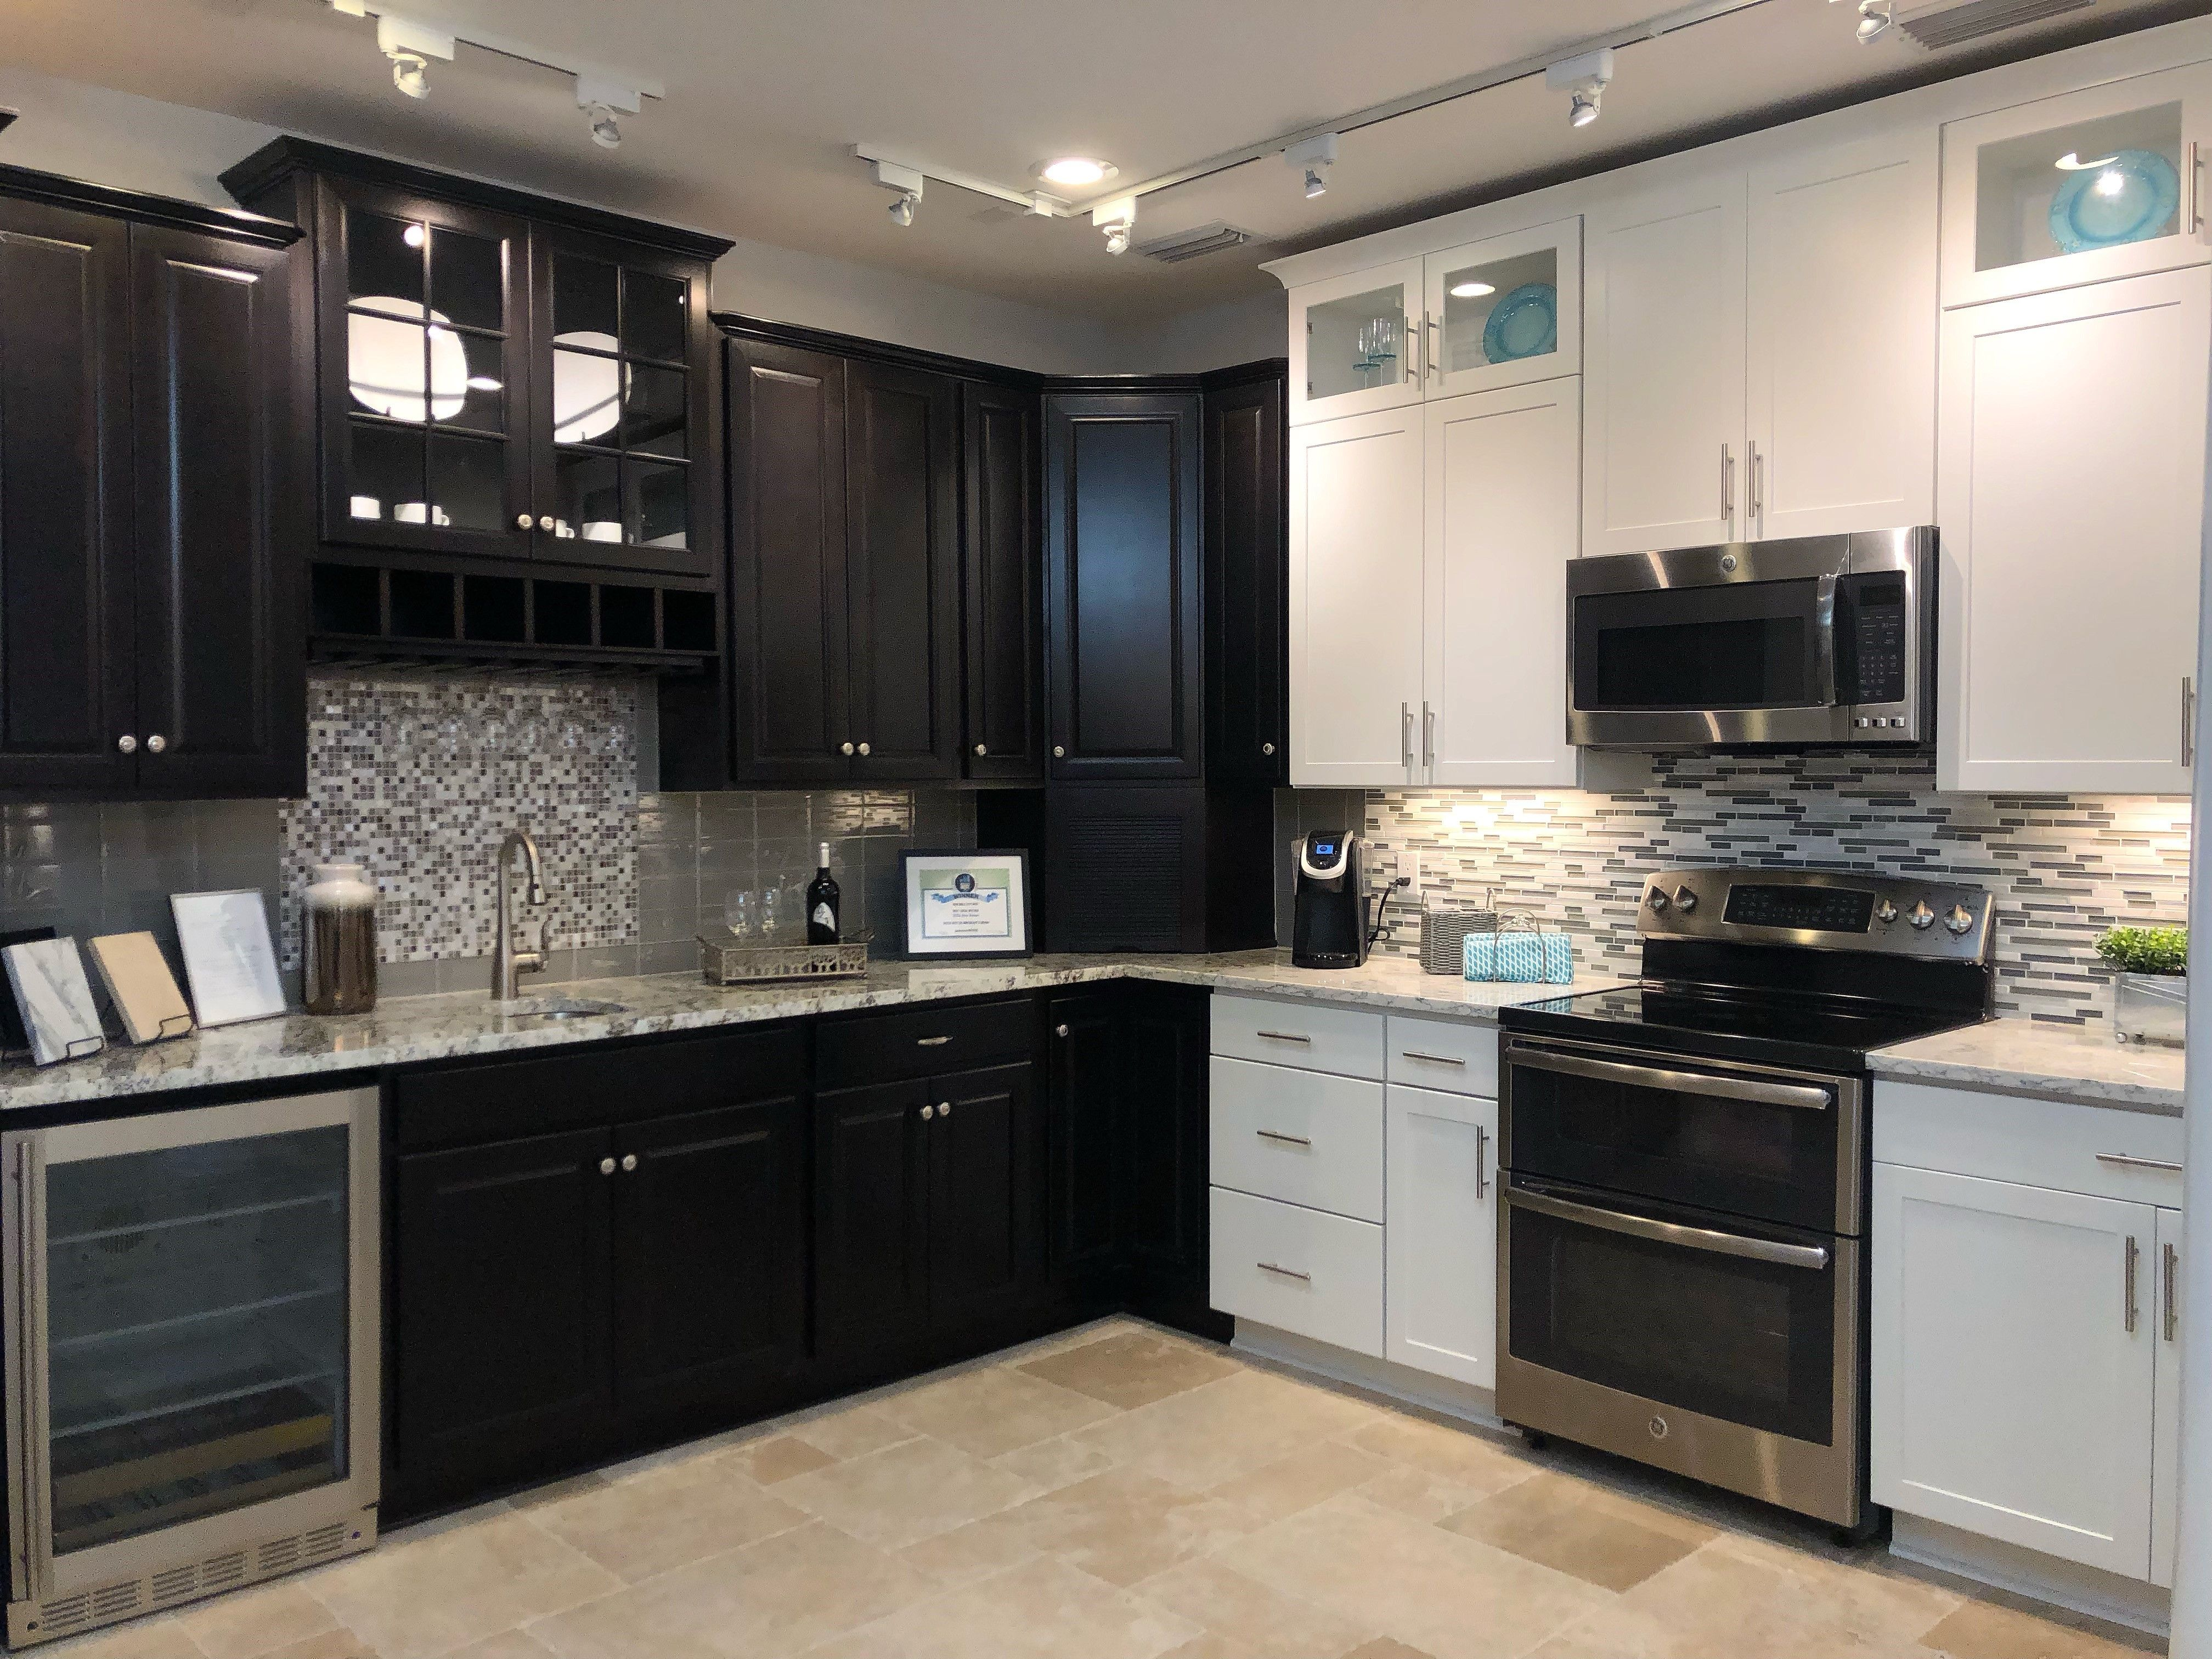 Which Cabinets Would You Choose From Our Design Center Sarsaparilla Or White Custom Home Designs House Design Cabinets And Countertops